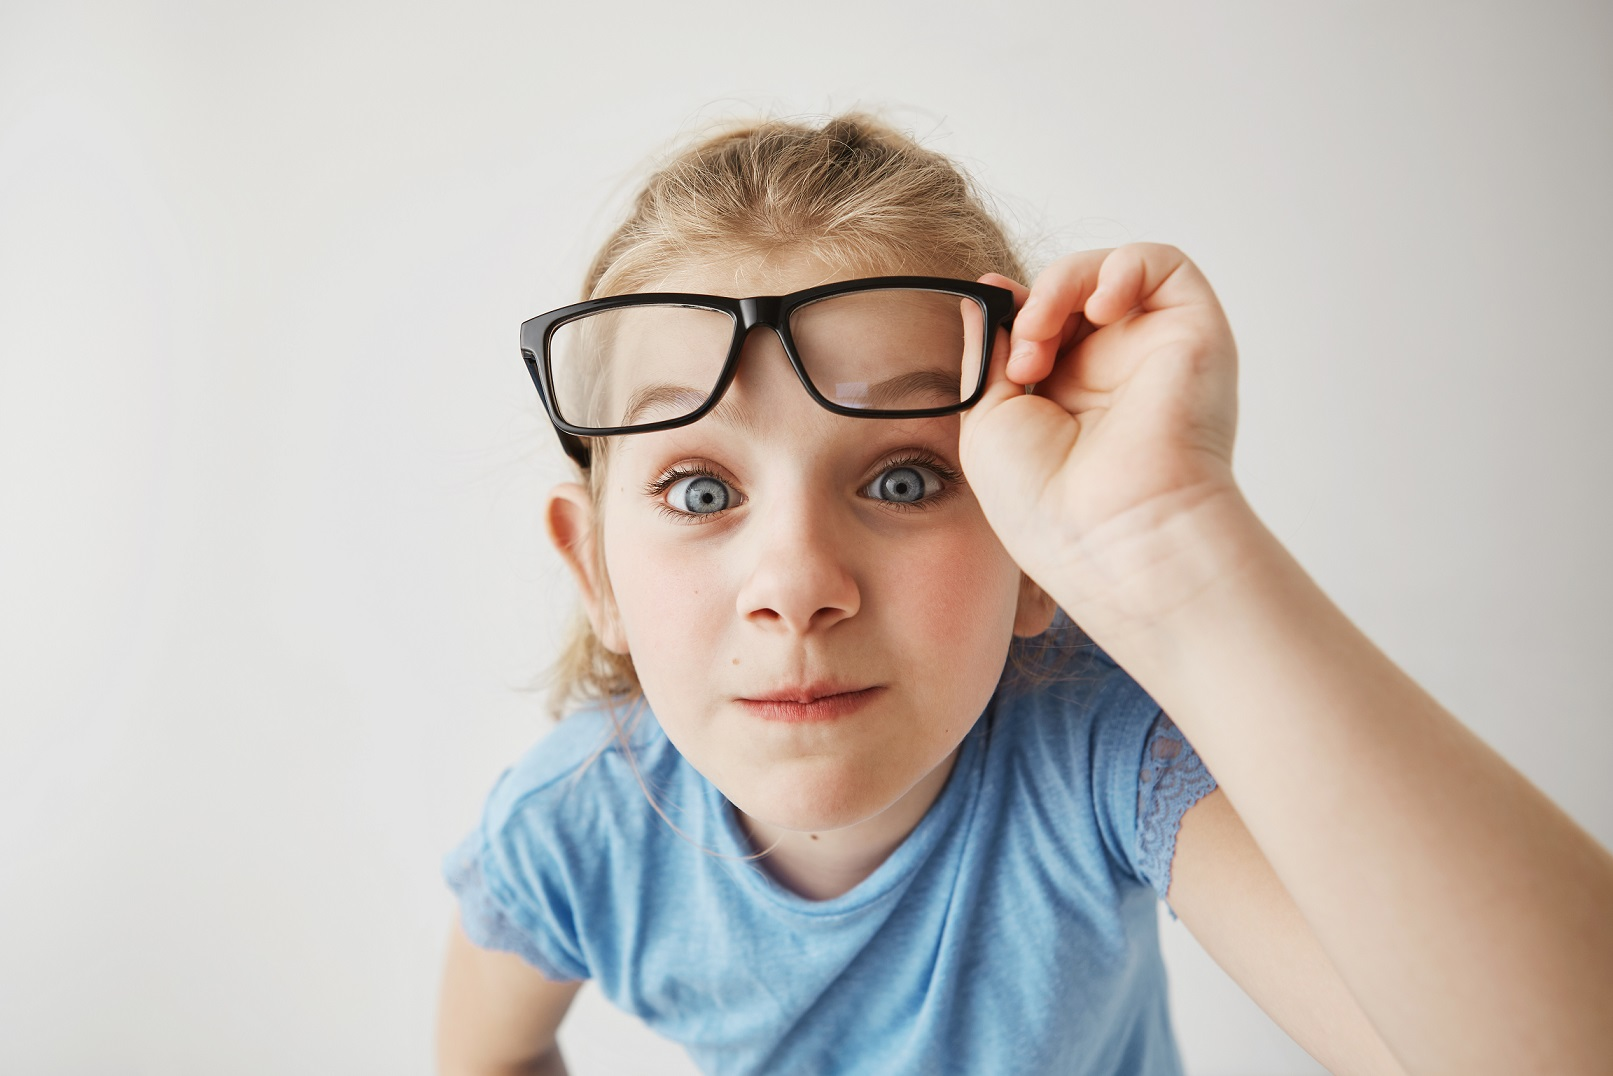 A child with glasses